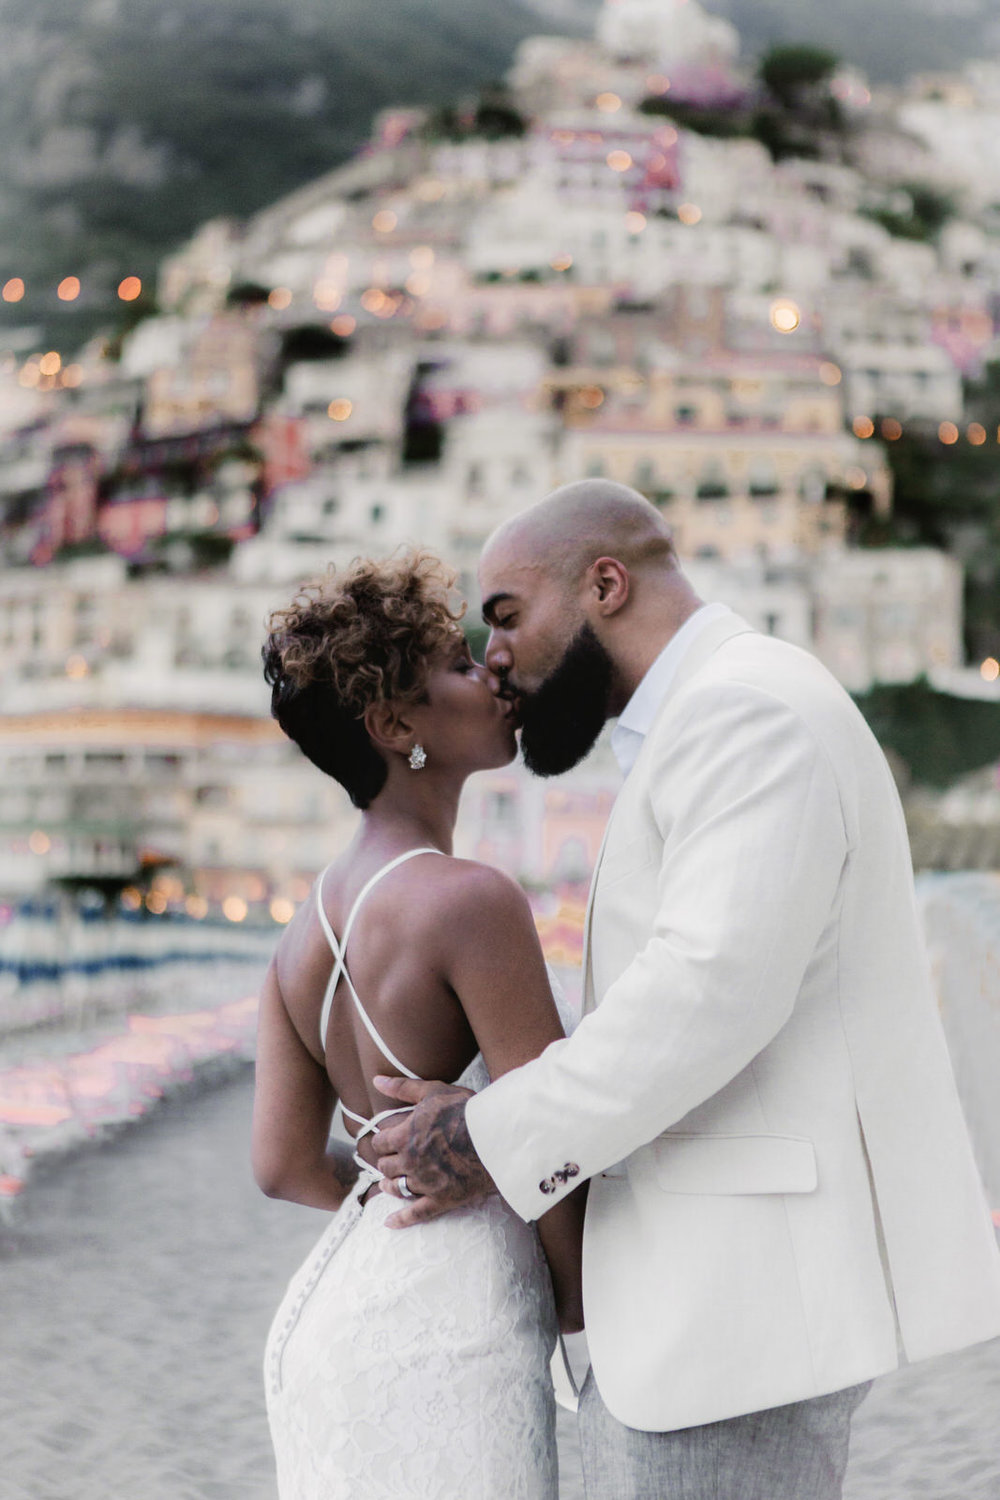 WEDDING & ELOPEMENT PACKAGE No3 - 3000 euro- all day cover up to 8h + couple mini-shoot- 500-800 fully edited photos- pre-wedding or post-wedding photo shoot( +50 fully edited photos from the shoot)- emotional slideshow with music- special box with USB and 30 prints